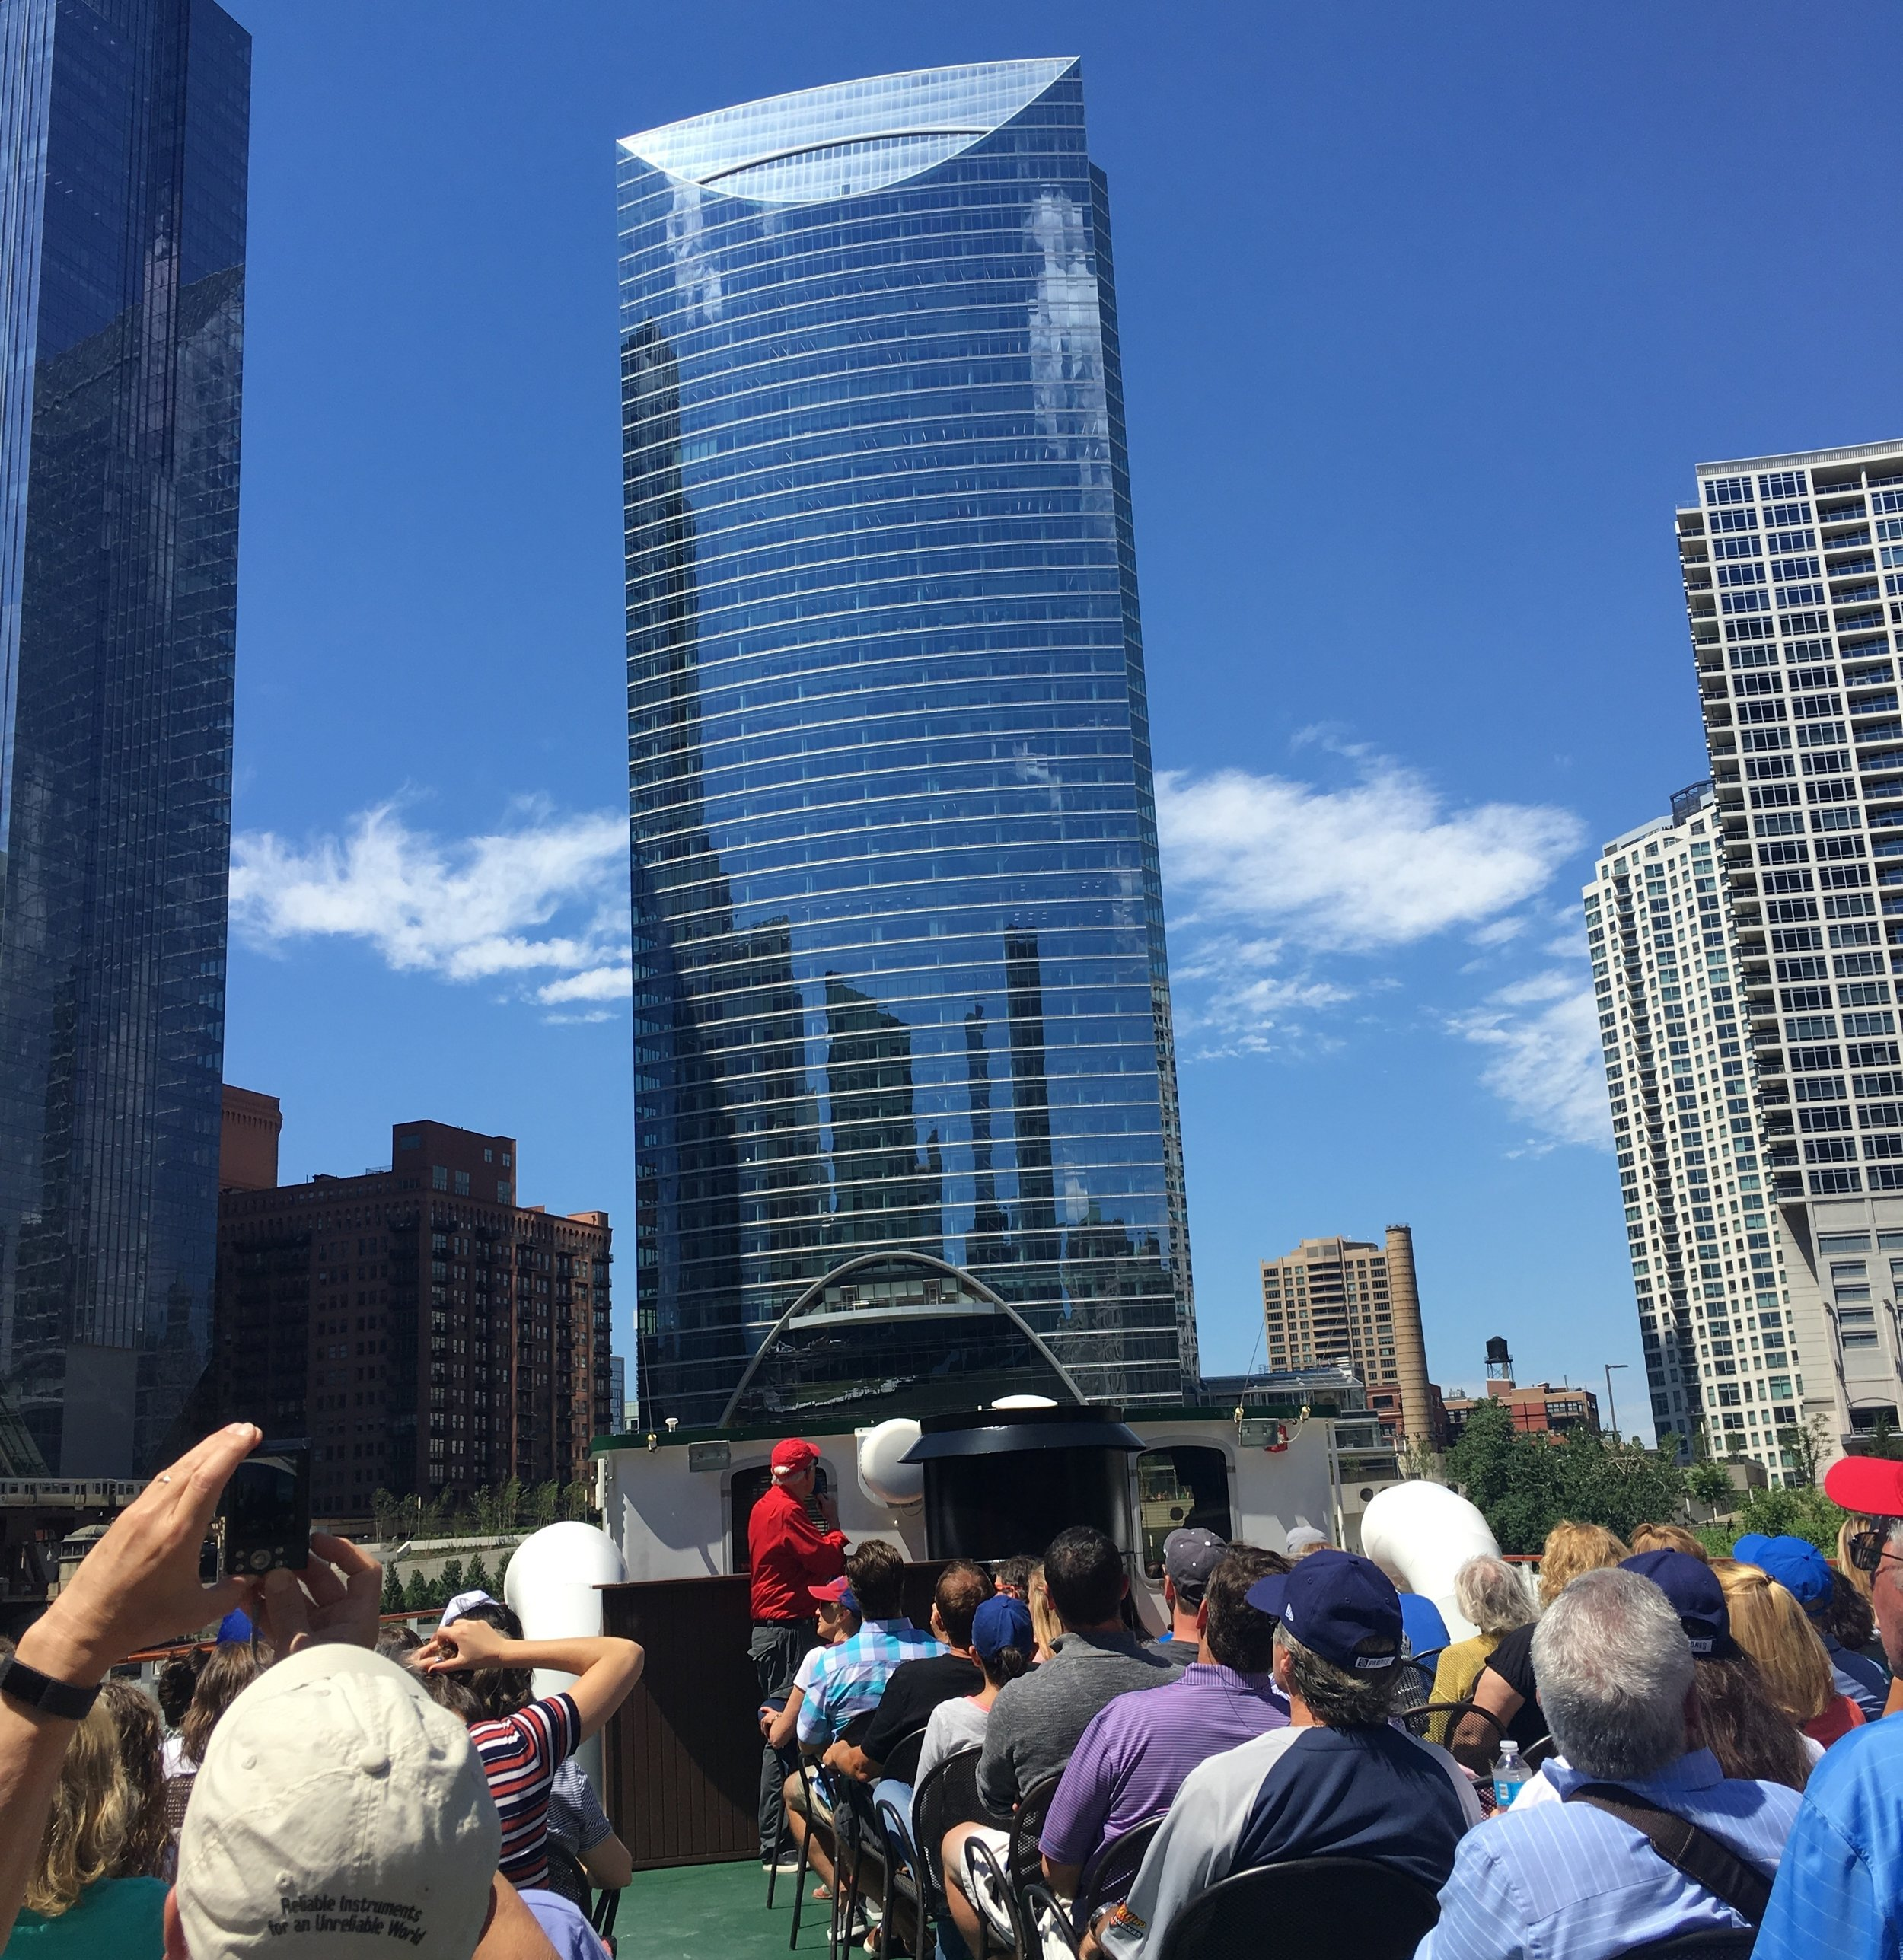 Architecture  River Cruise  - A cruise on the Chicago River is the best vantage to admire the ever changing city skyline and appreciate world-famous architecture.